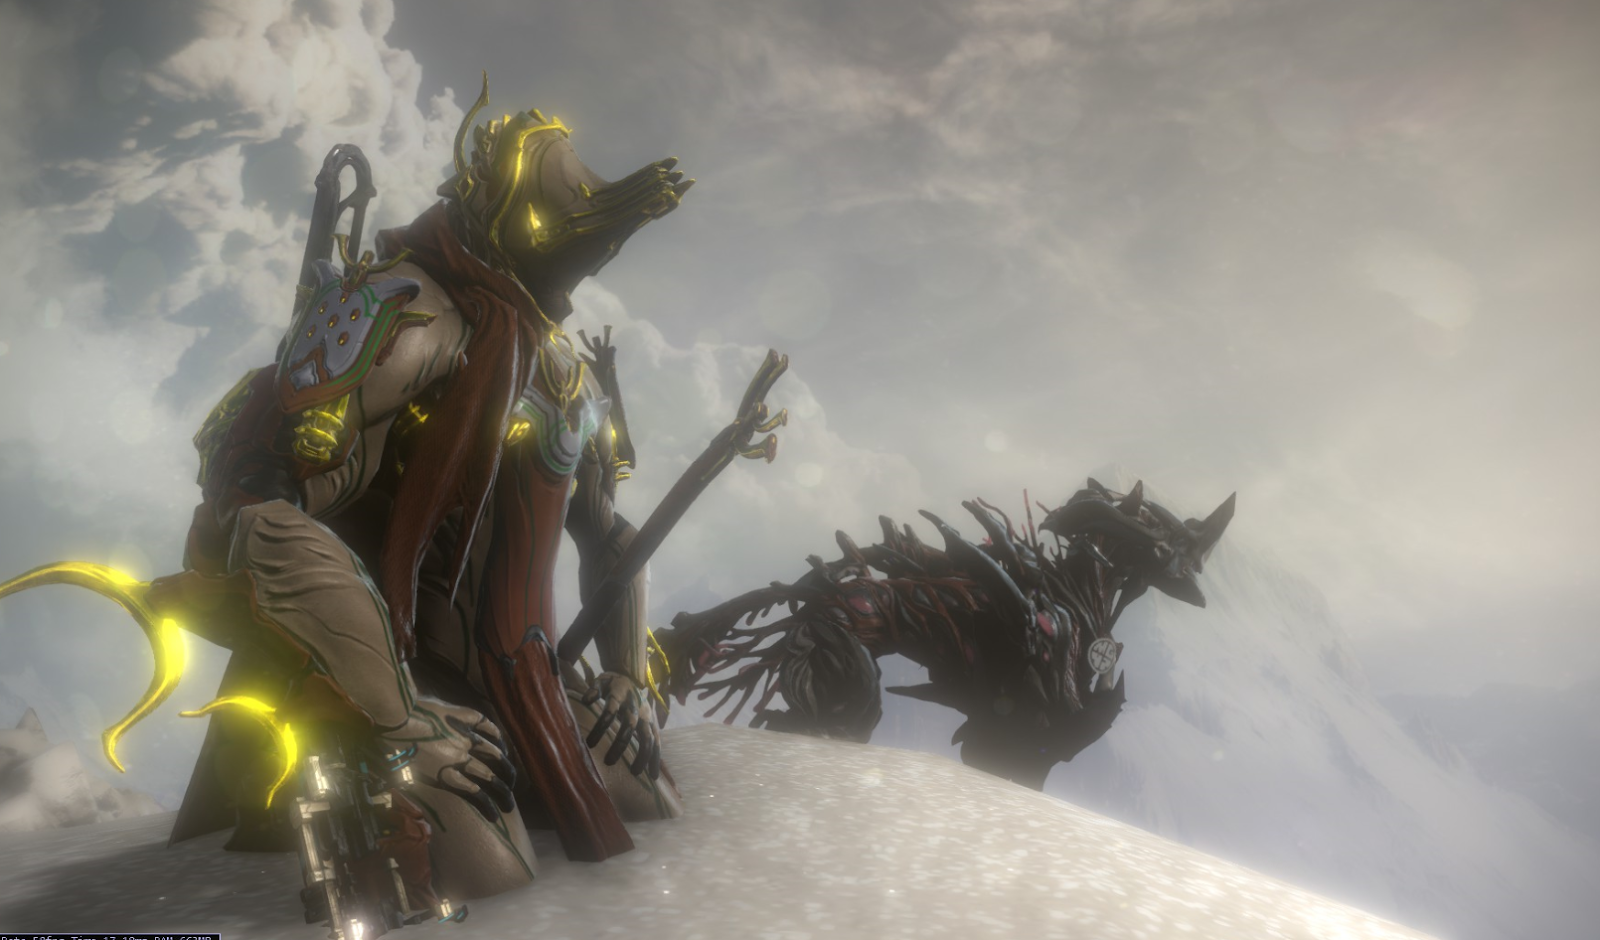 warframe review 2020 grind weapons companions